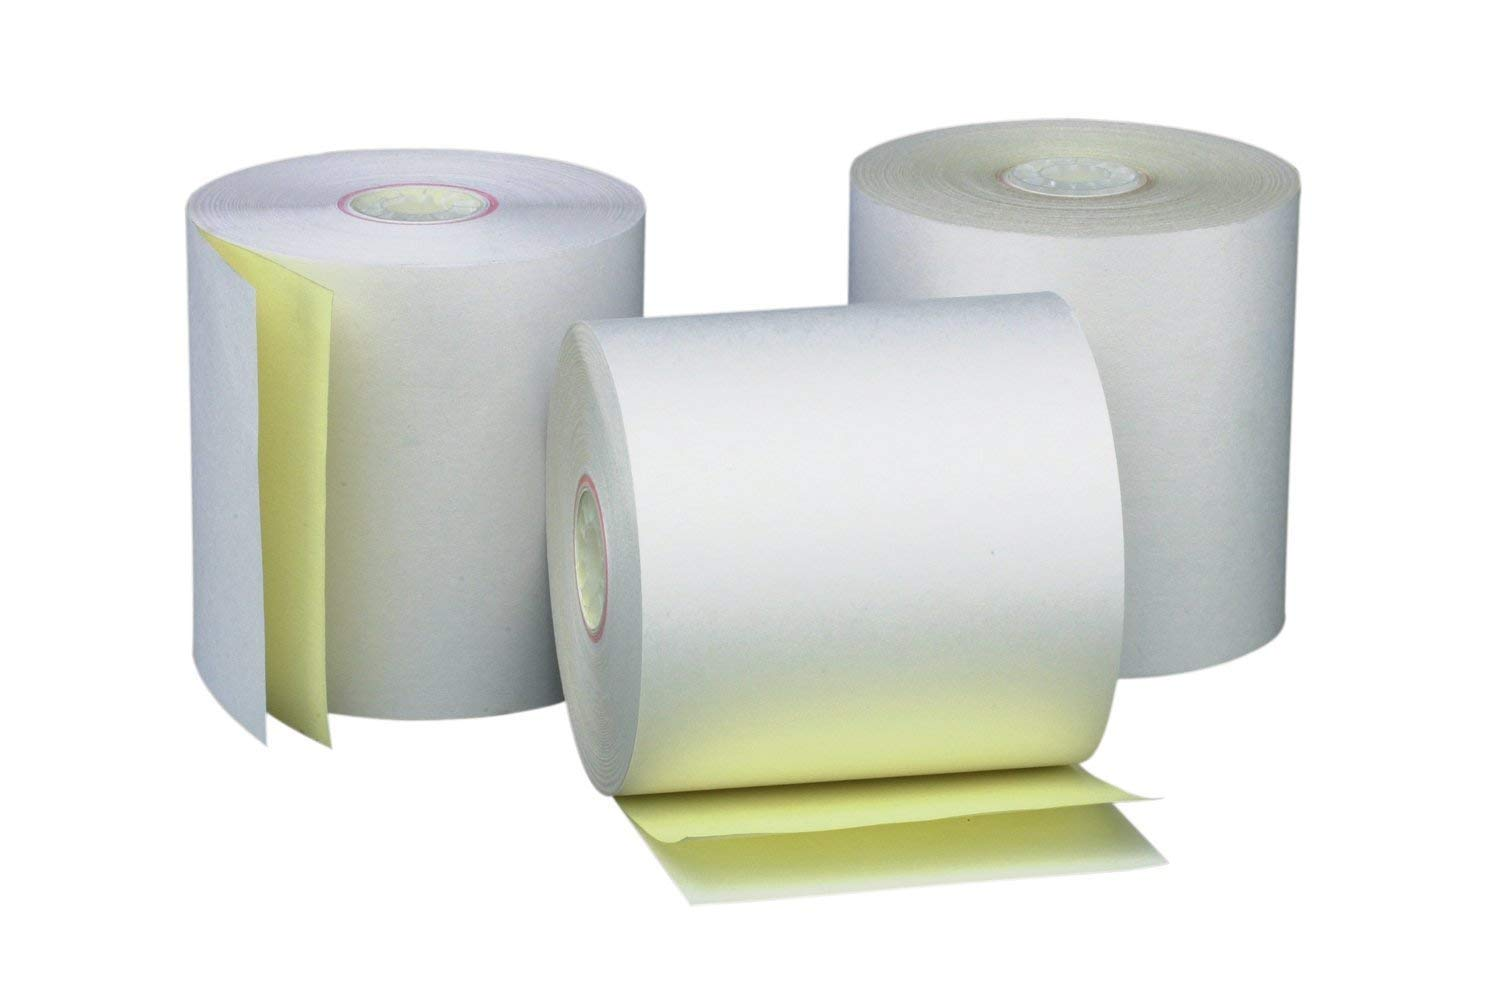 PM Company Perfection 2 Ply POS/Cash Register Rolls, 3 Inches X 90 Feet, White/Canary, 50 per Carton (07706) (2-Pack)